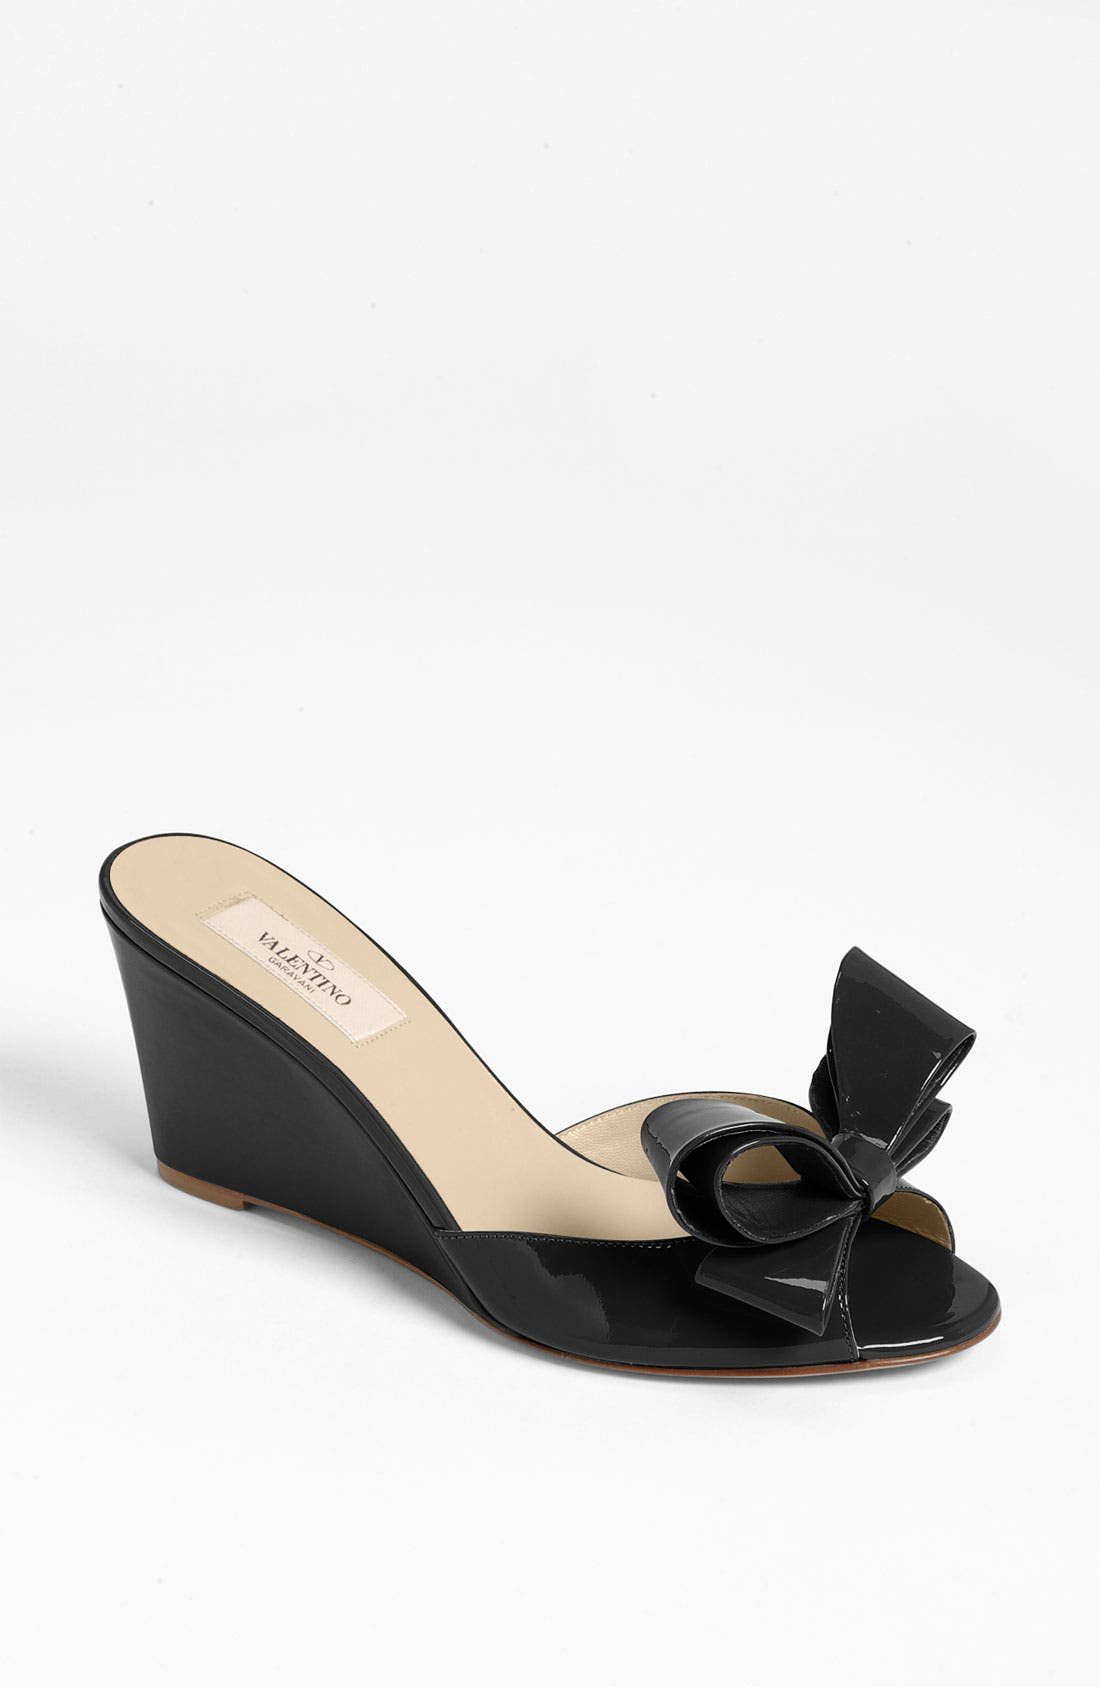 Alternate Image 1 Selected - VALENTINO GARAVANI Bow Wedge Sandal